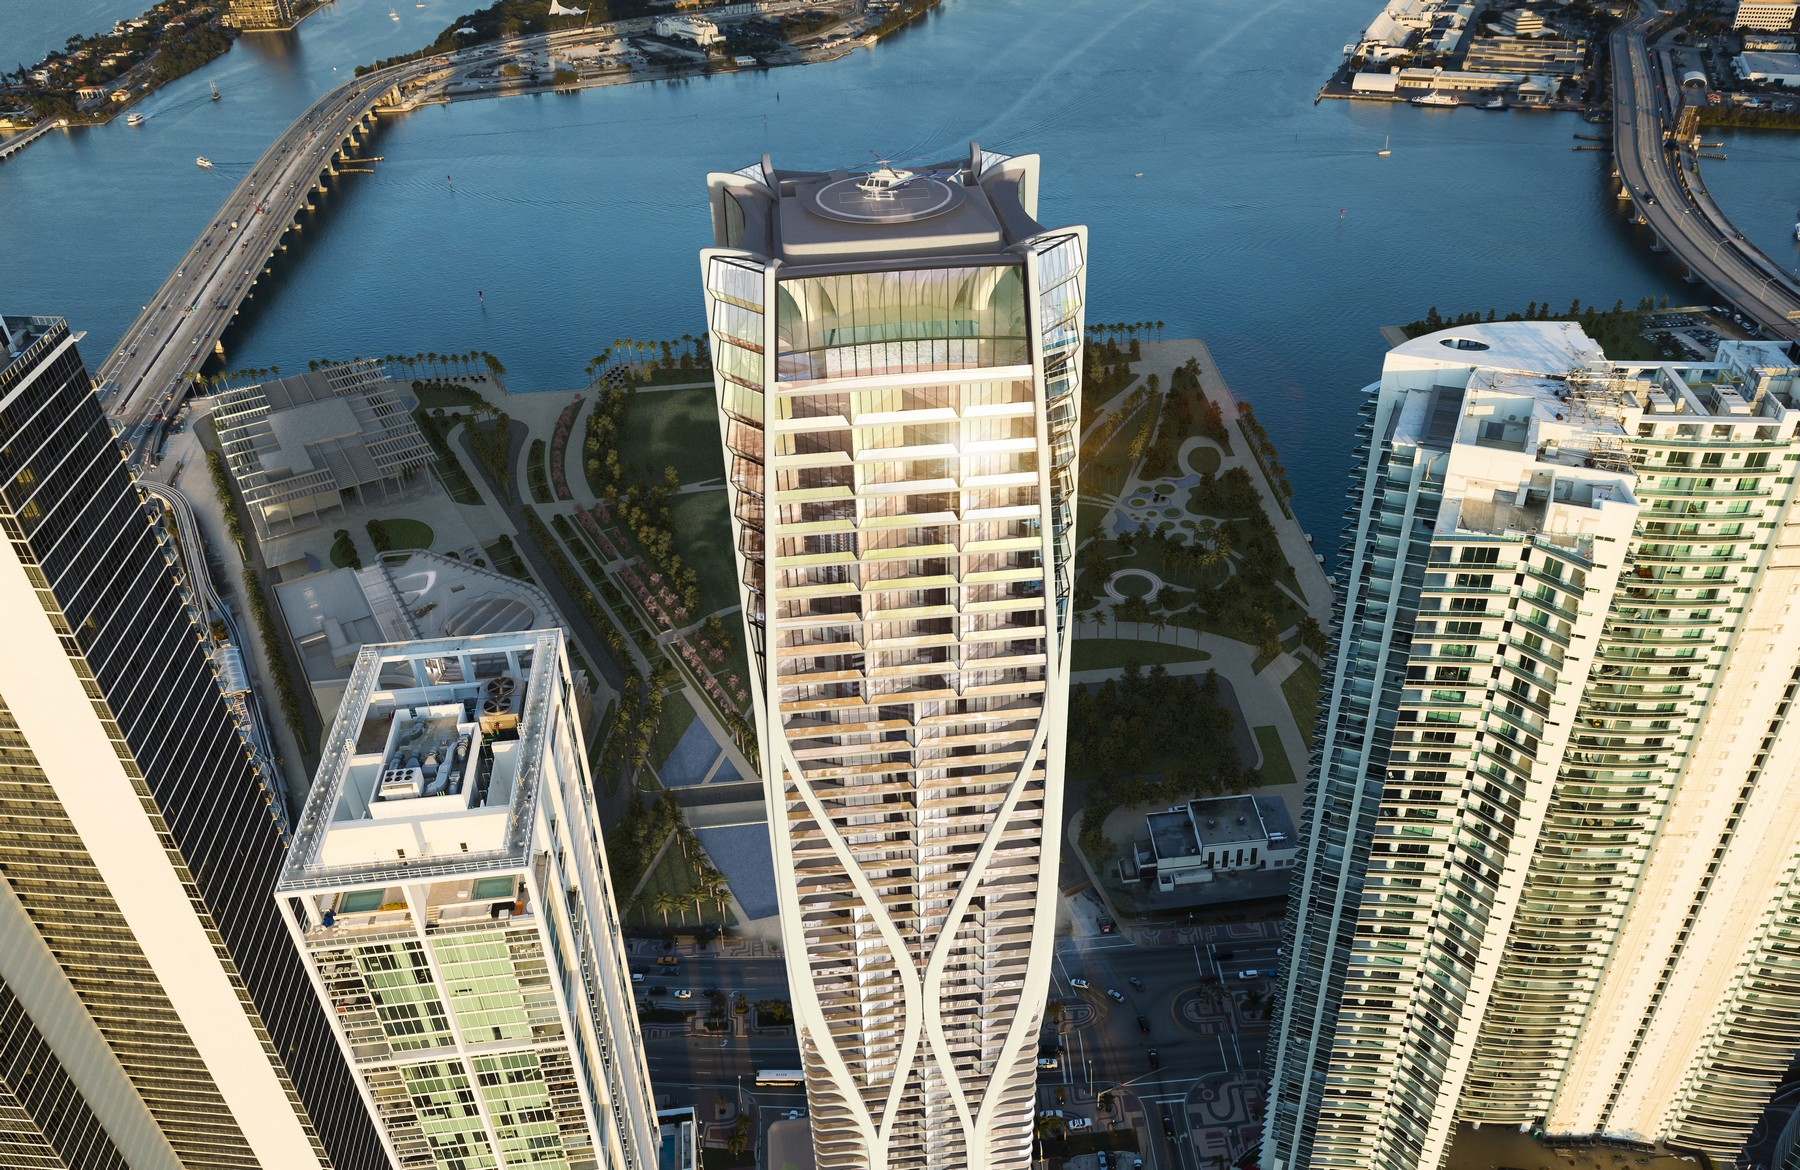 Appartement pour l Vente à One Thousand Museum 1000 Biscayne Blvd # 1801 Miami, Florida, 33132 États-Unis